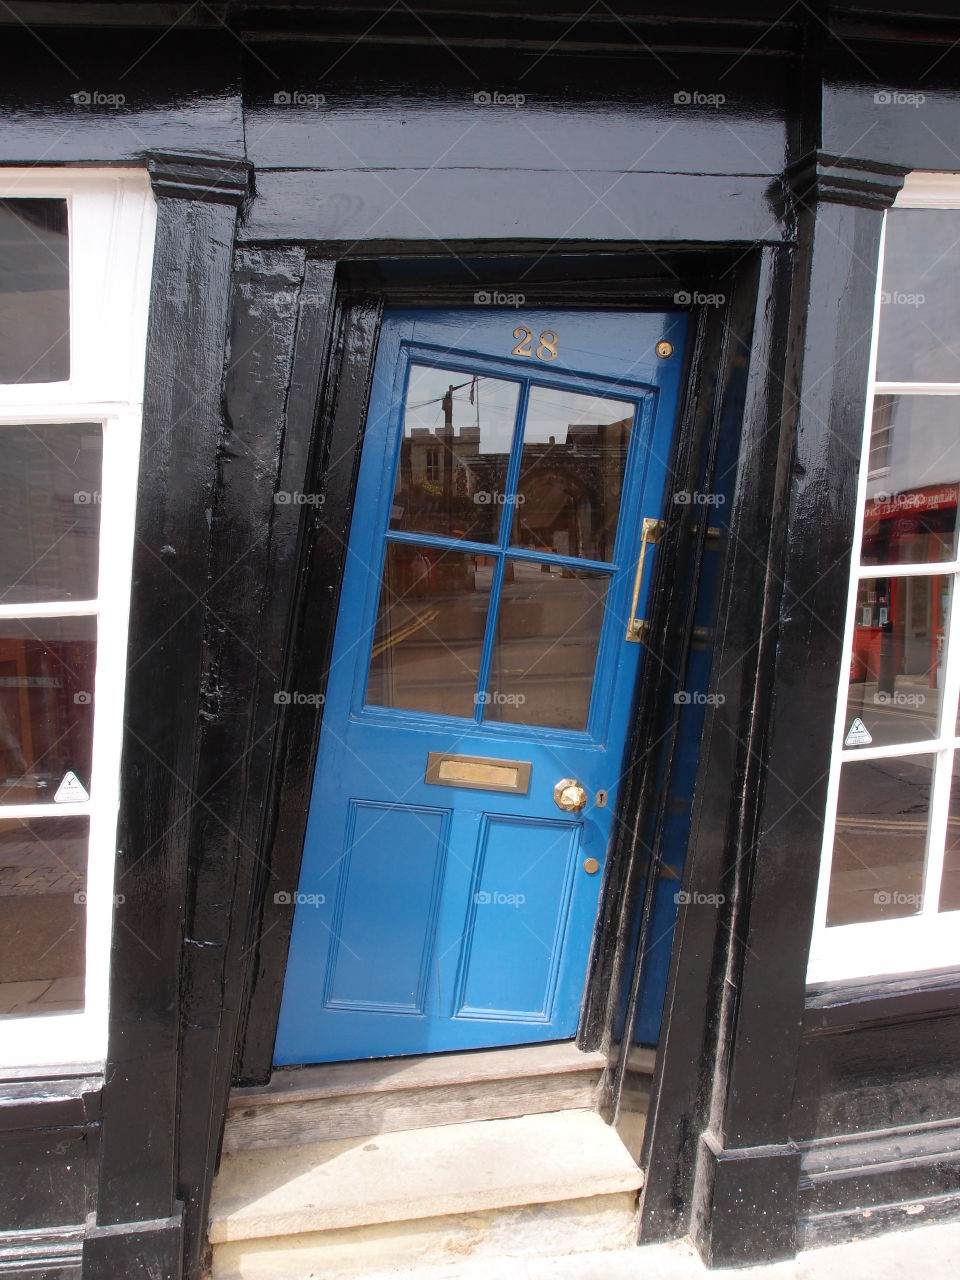 A unique slanted blue door in a black building in England on a summer day.